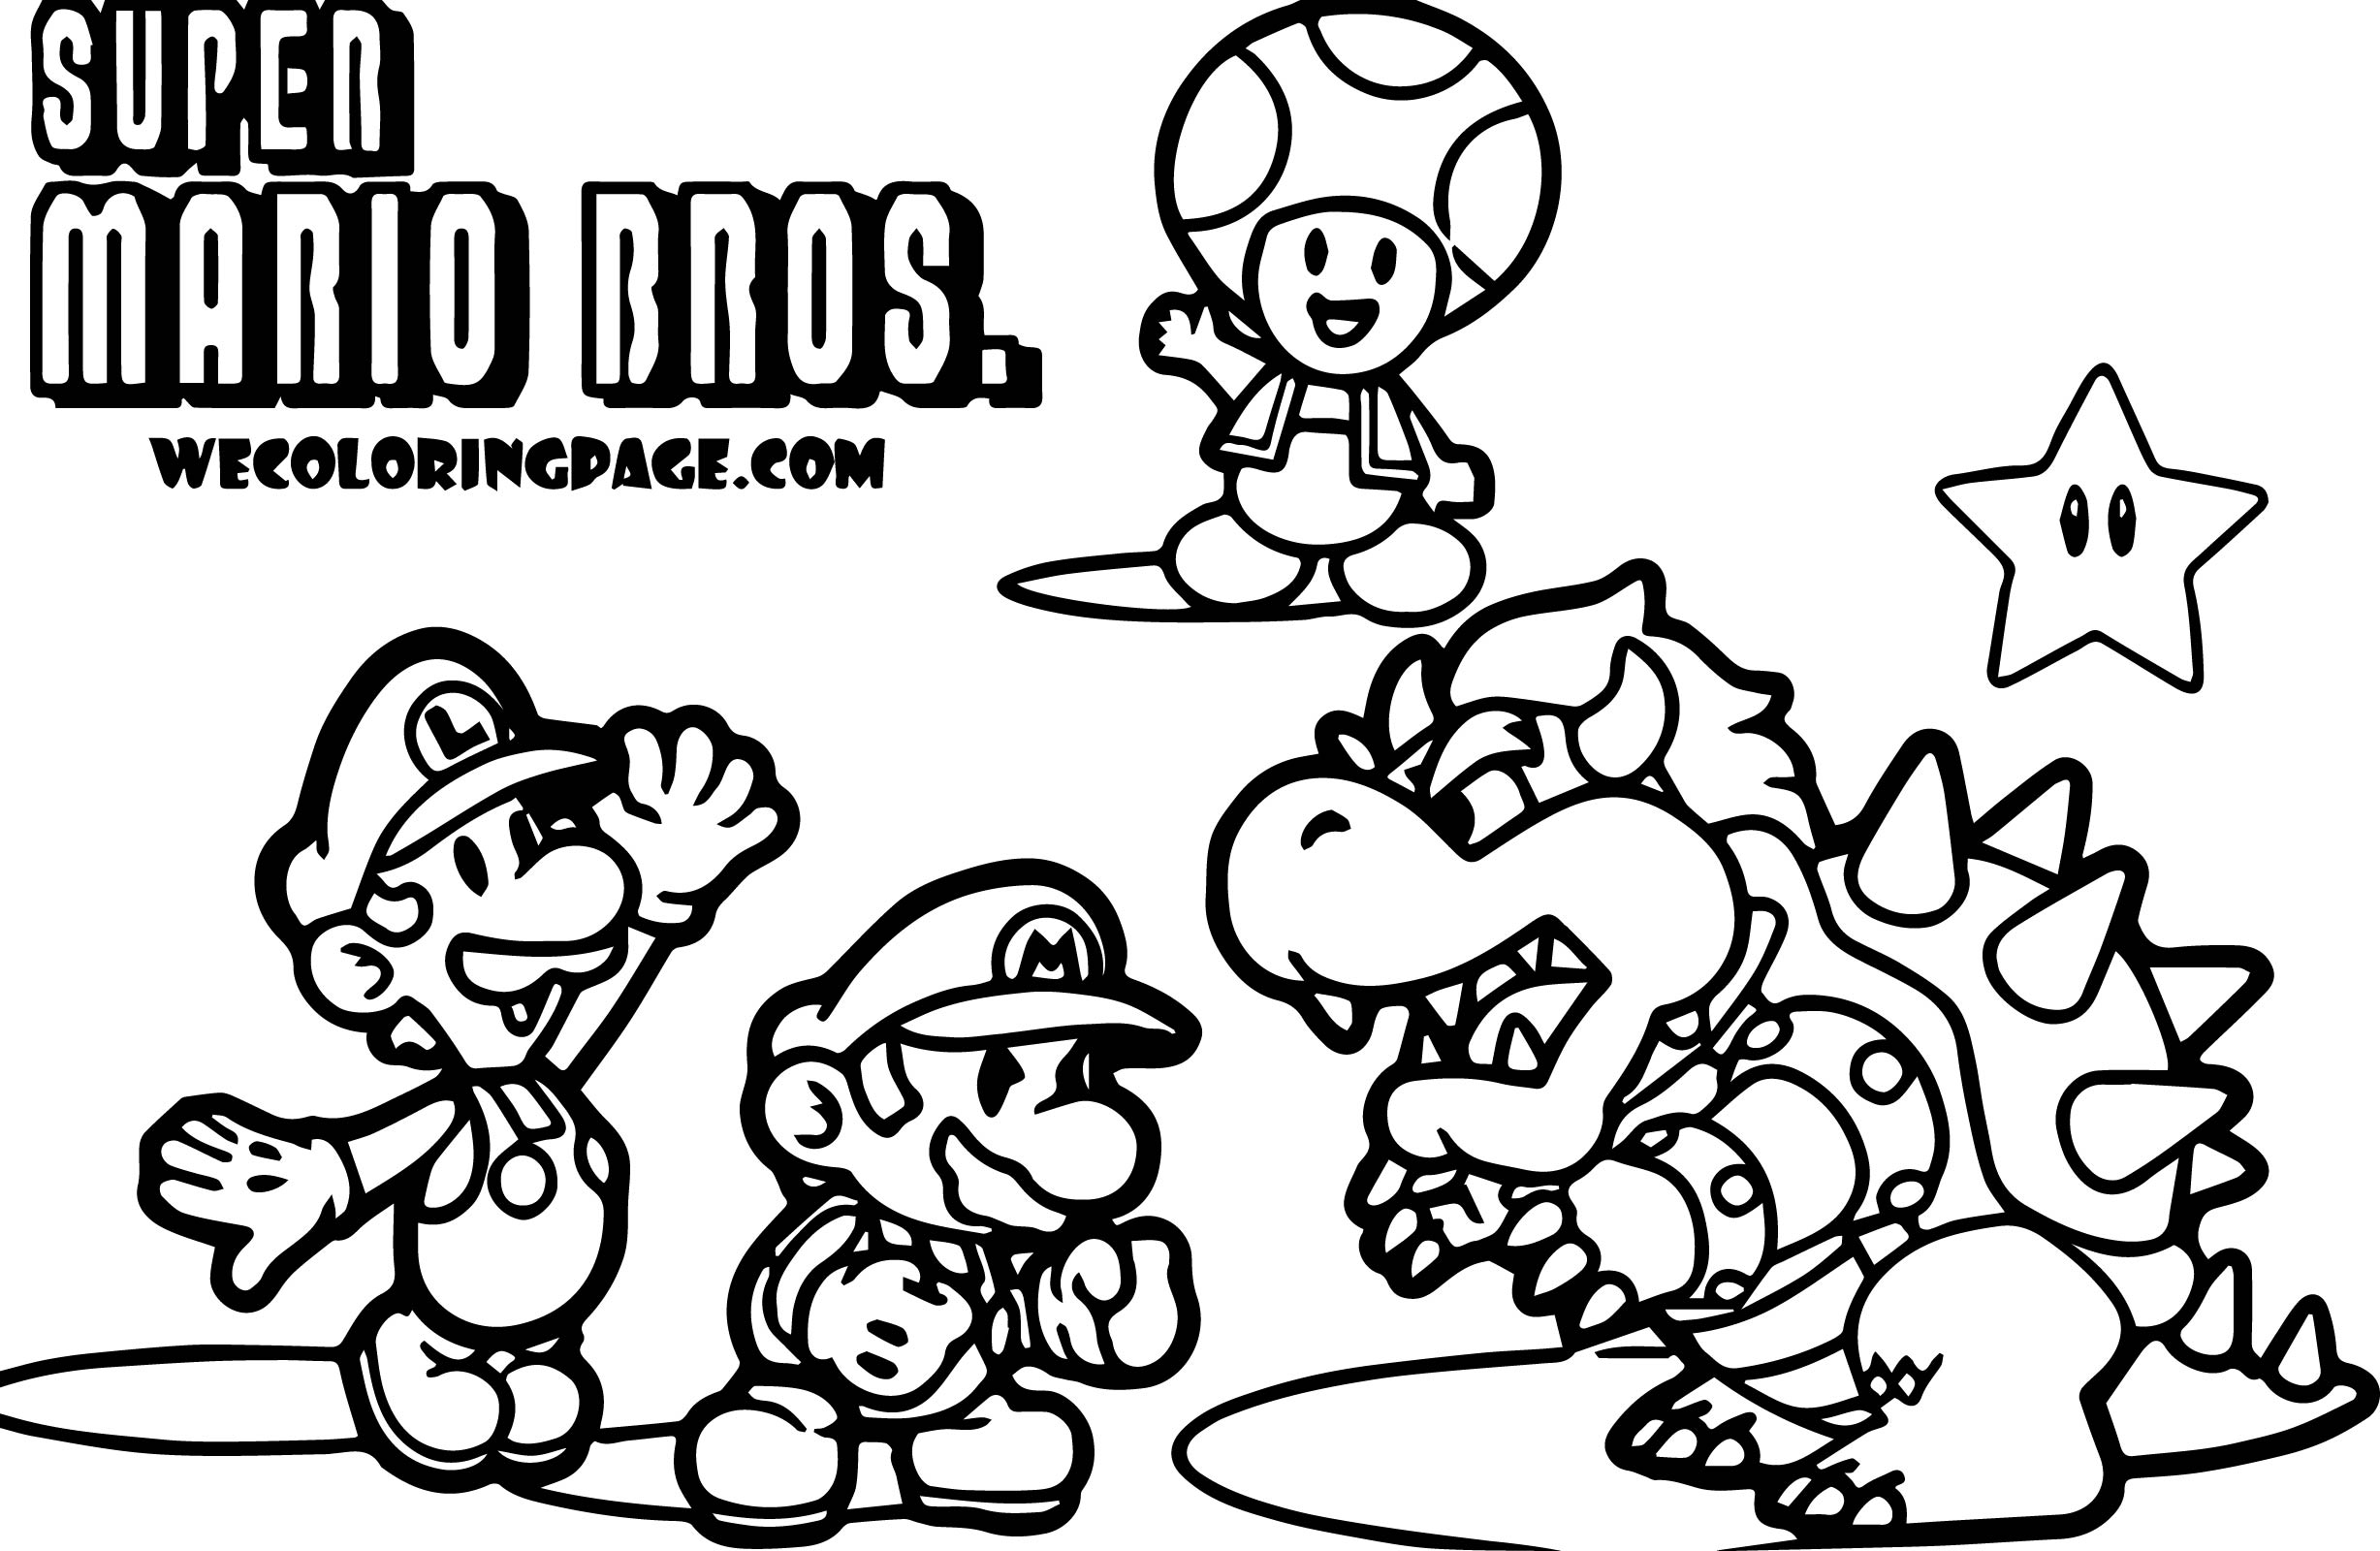 2455x1600 Super Mario Bros Characters Coloring Pages Sketch In Brothers